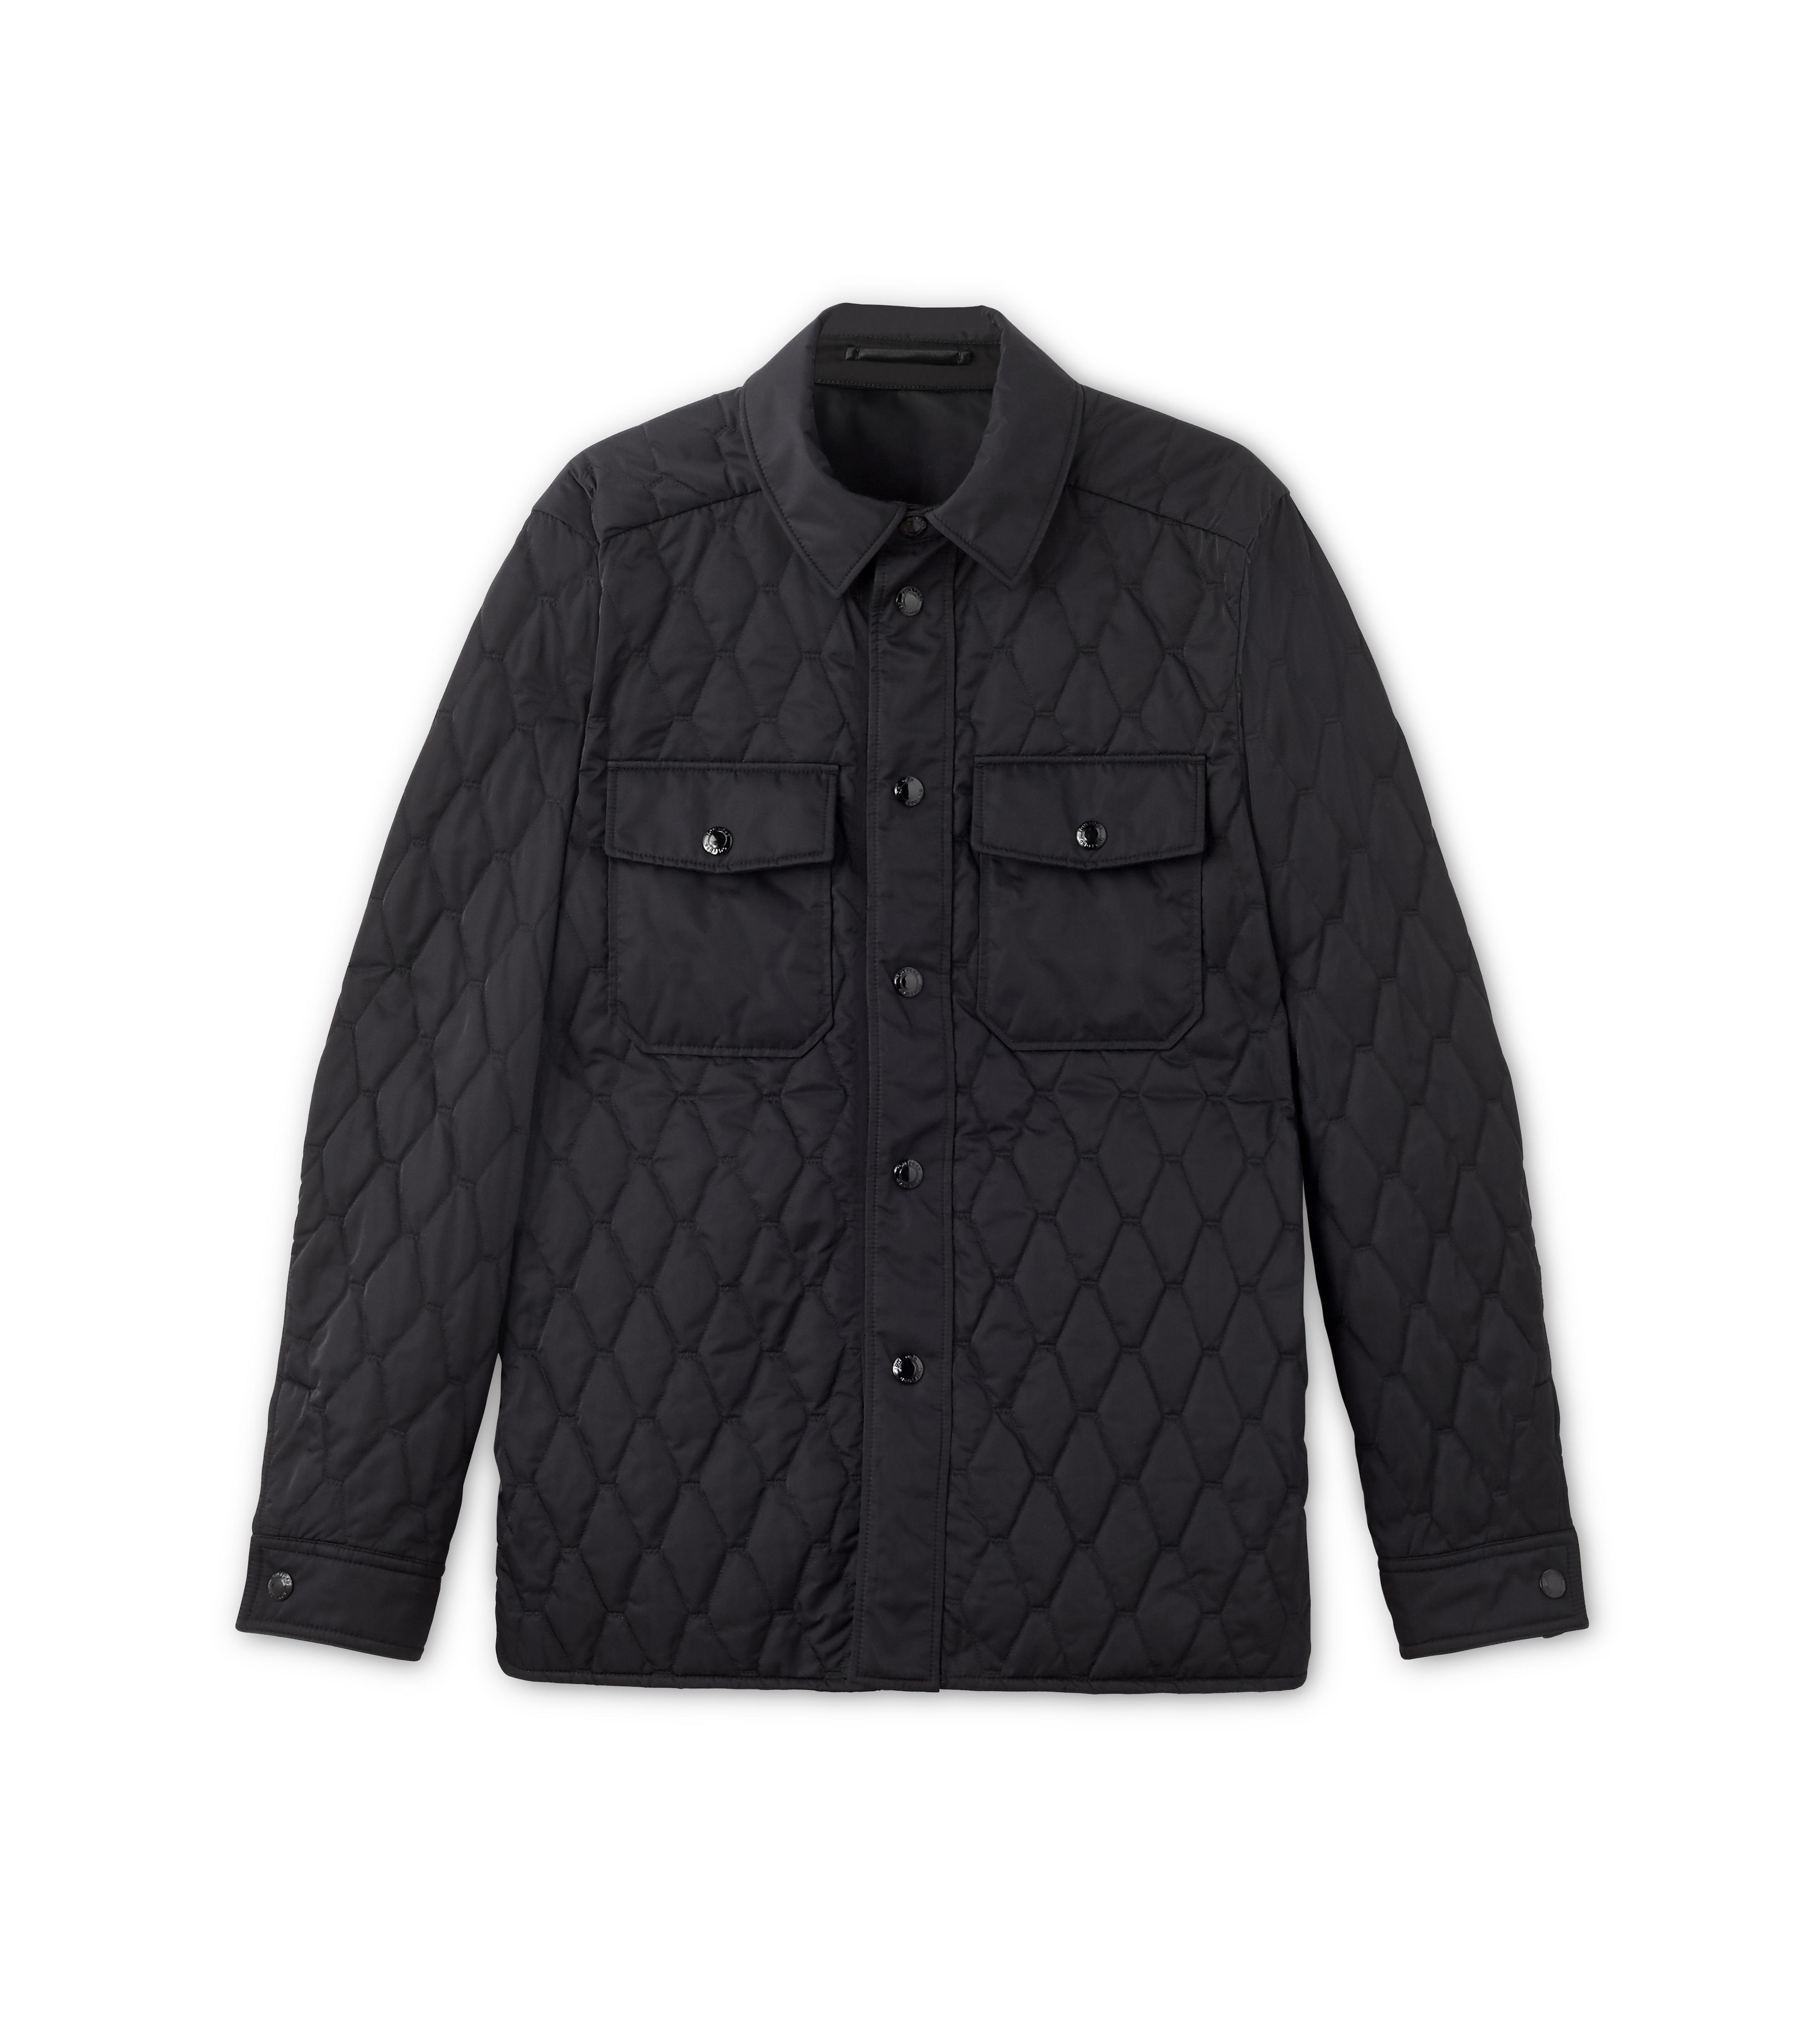 NYLON TWILL DIAMOND QUILTED OUTER SHIRT A thumbnail